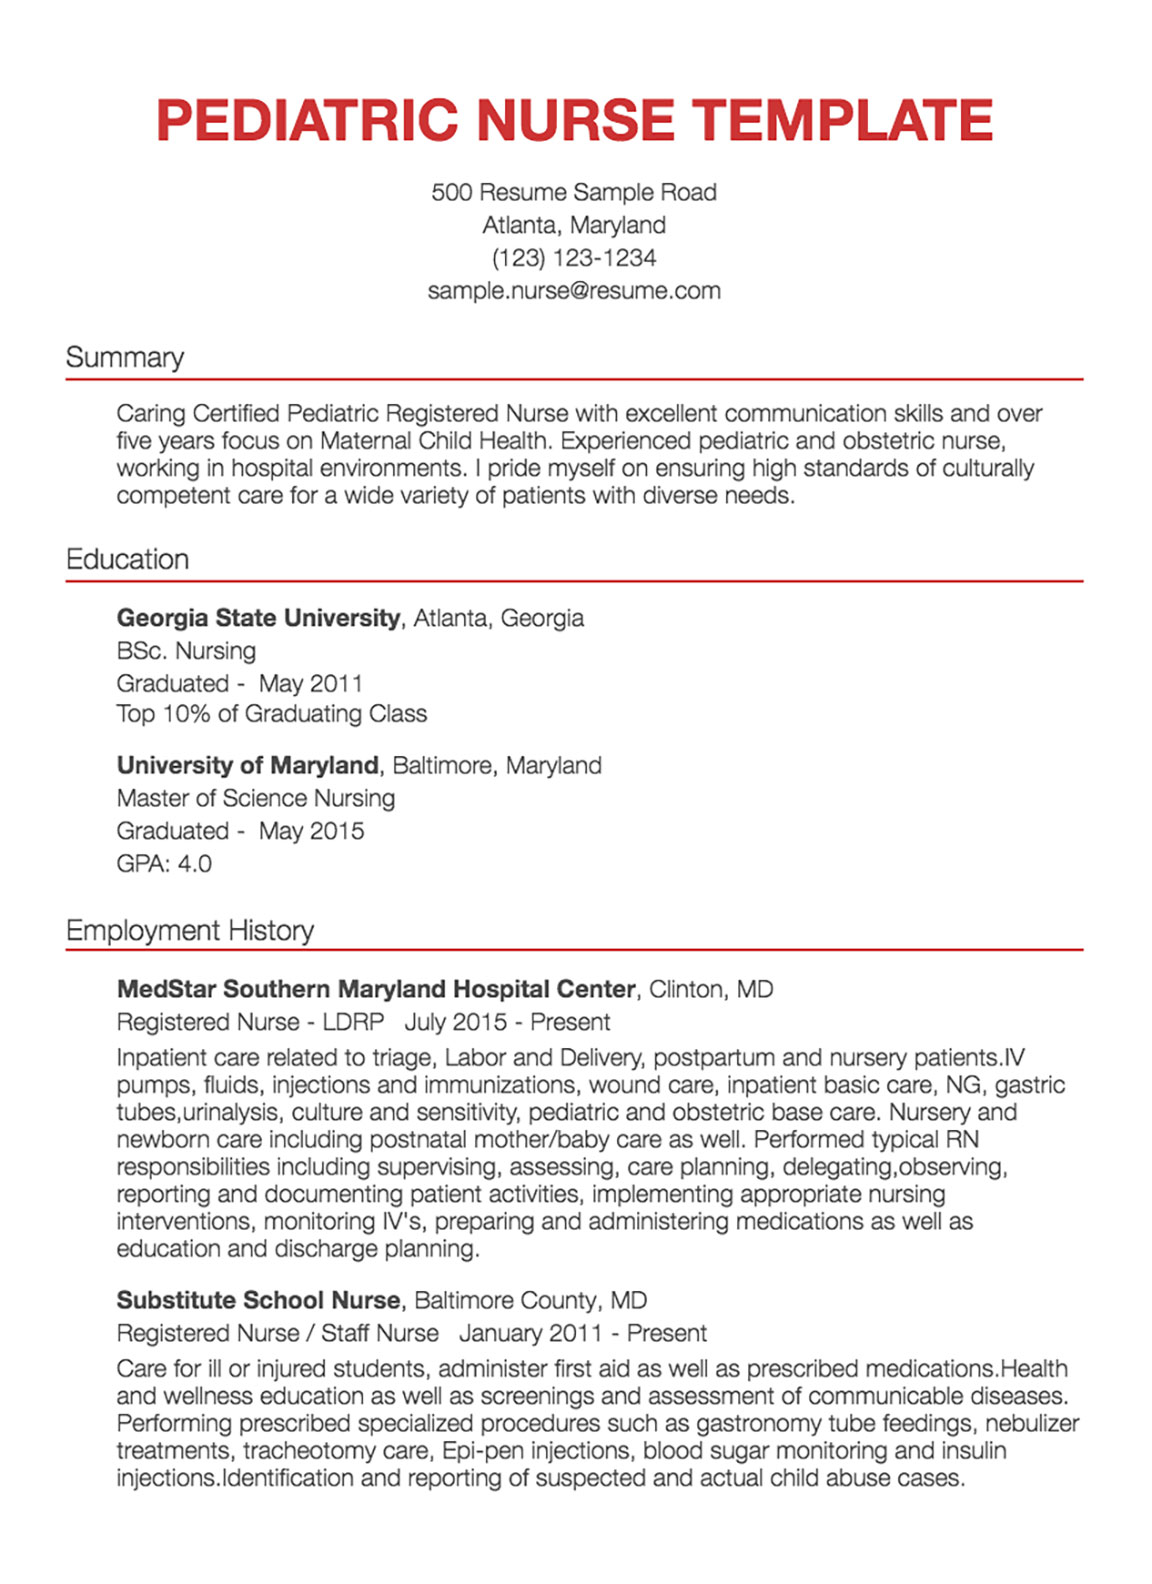 Pediatric Registered Nurse Example Nursing Consultant Resume Sample